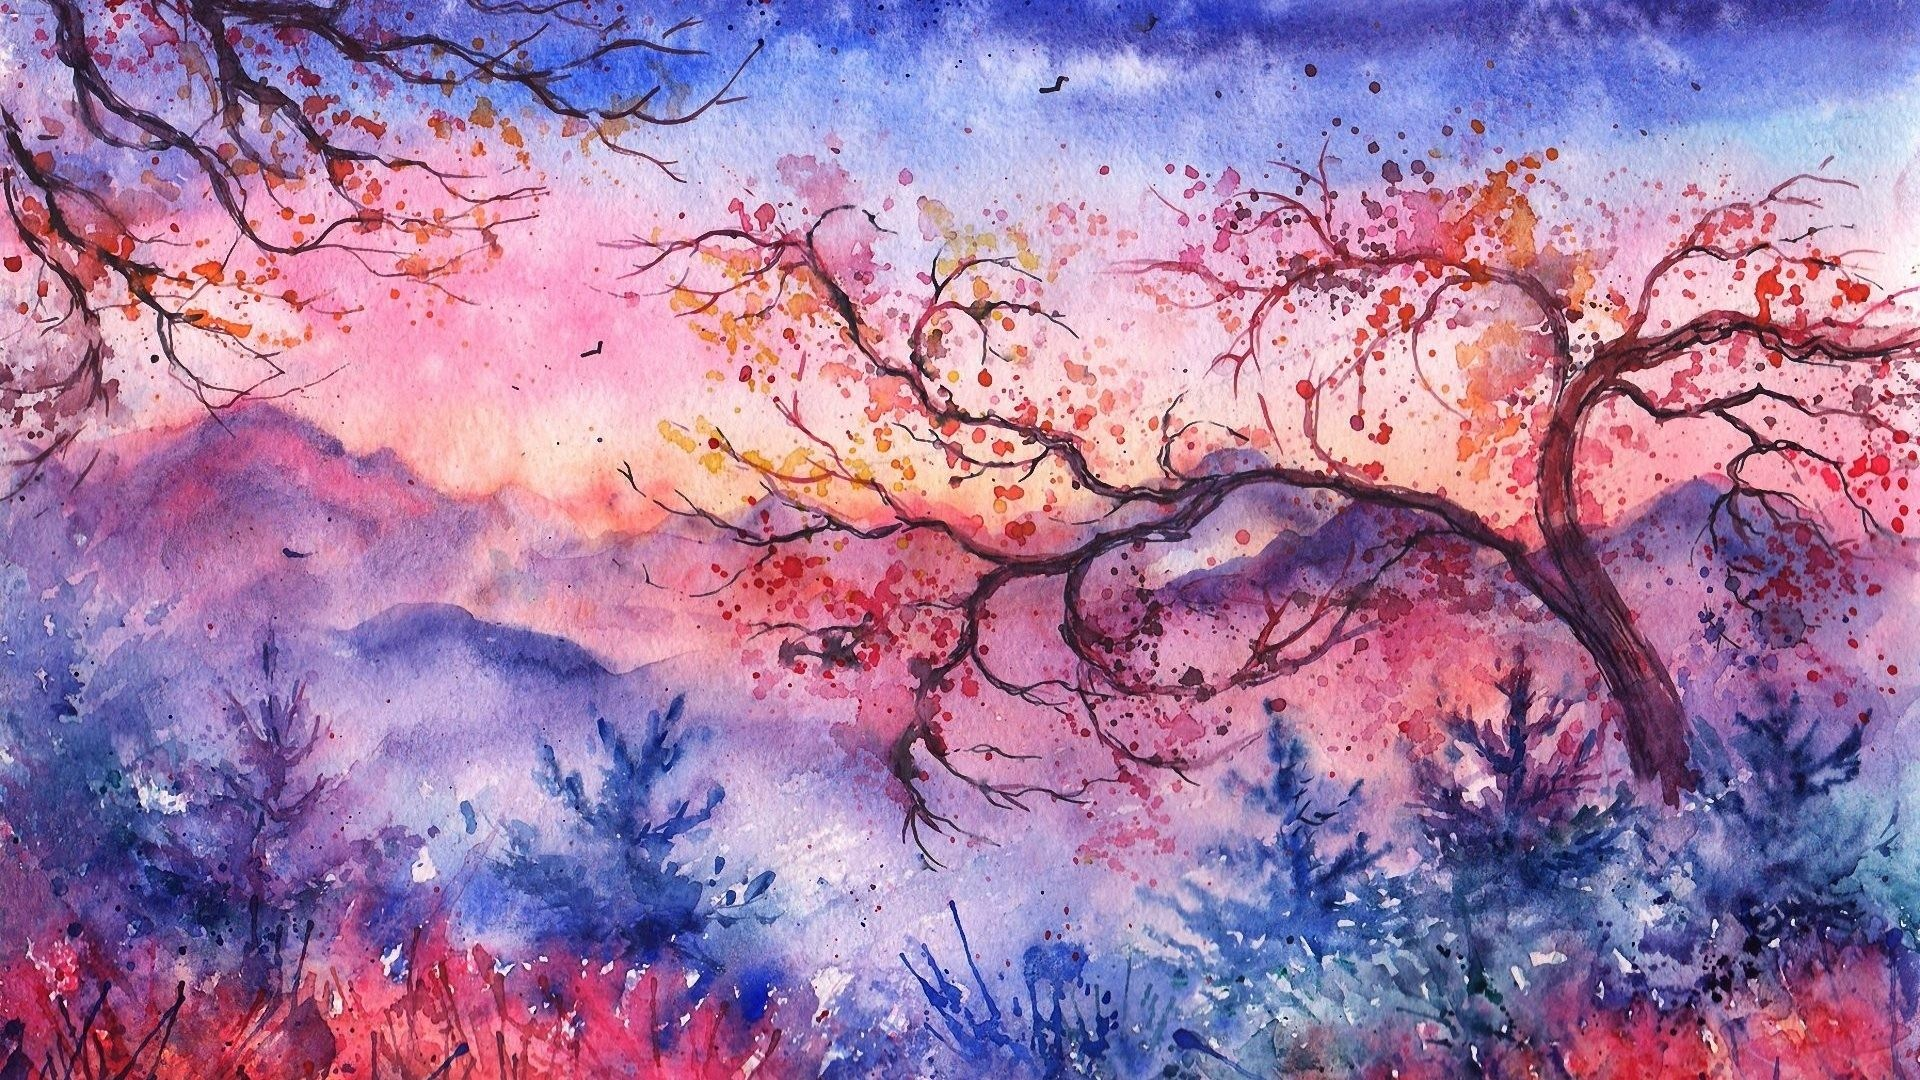 Painted Tag – Christmas Landscape Trees Foliage Watercolor Birds Painted  Evening Sunset Mountains Abstract Nature Wallpaper